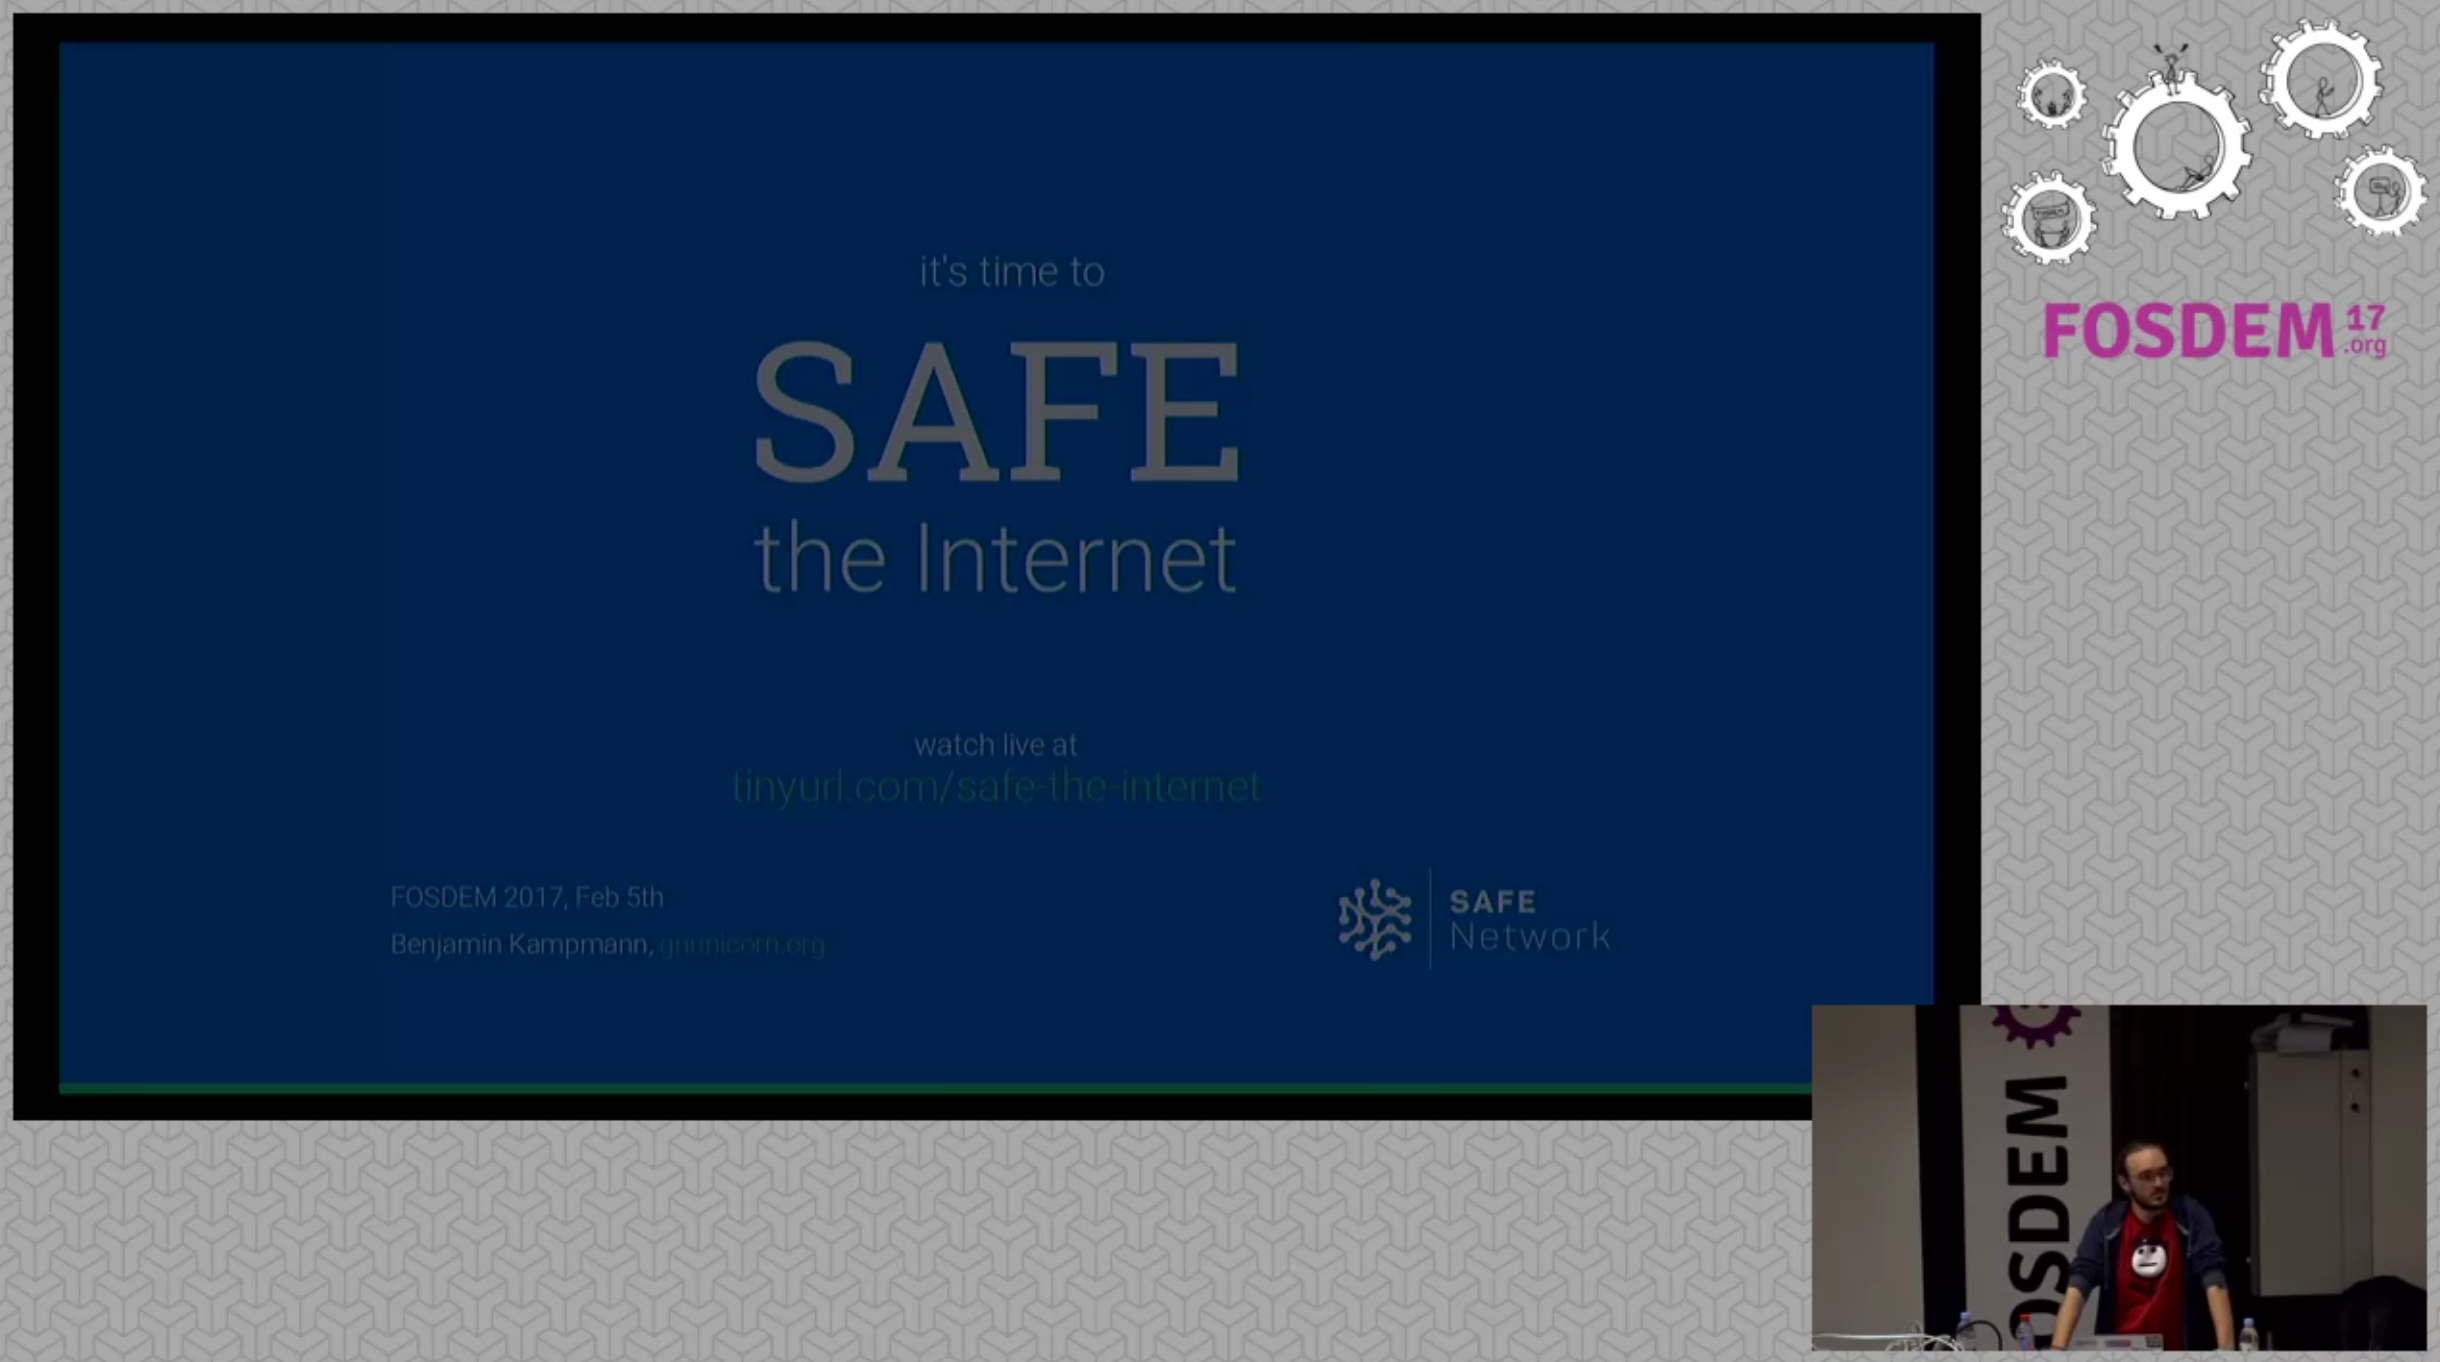 FOSDEM 2017: It's time to SAFE the internet